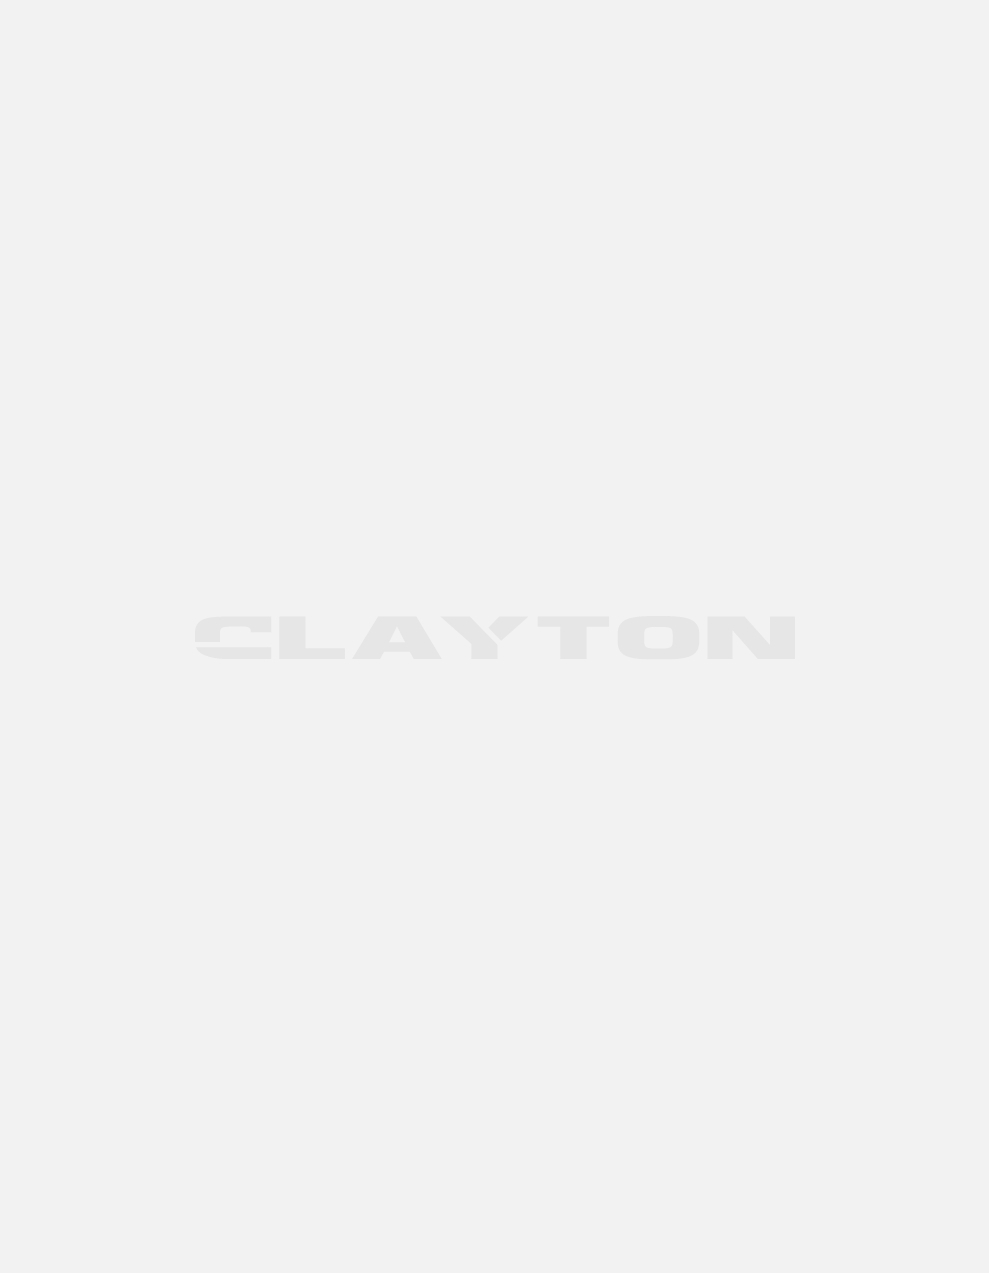 Sweatershirt with embossed writing